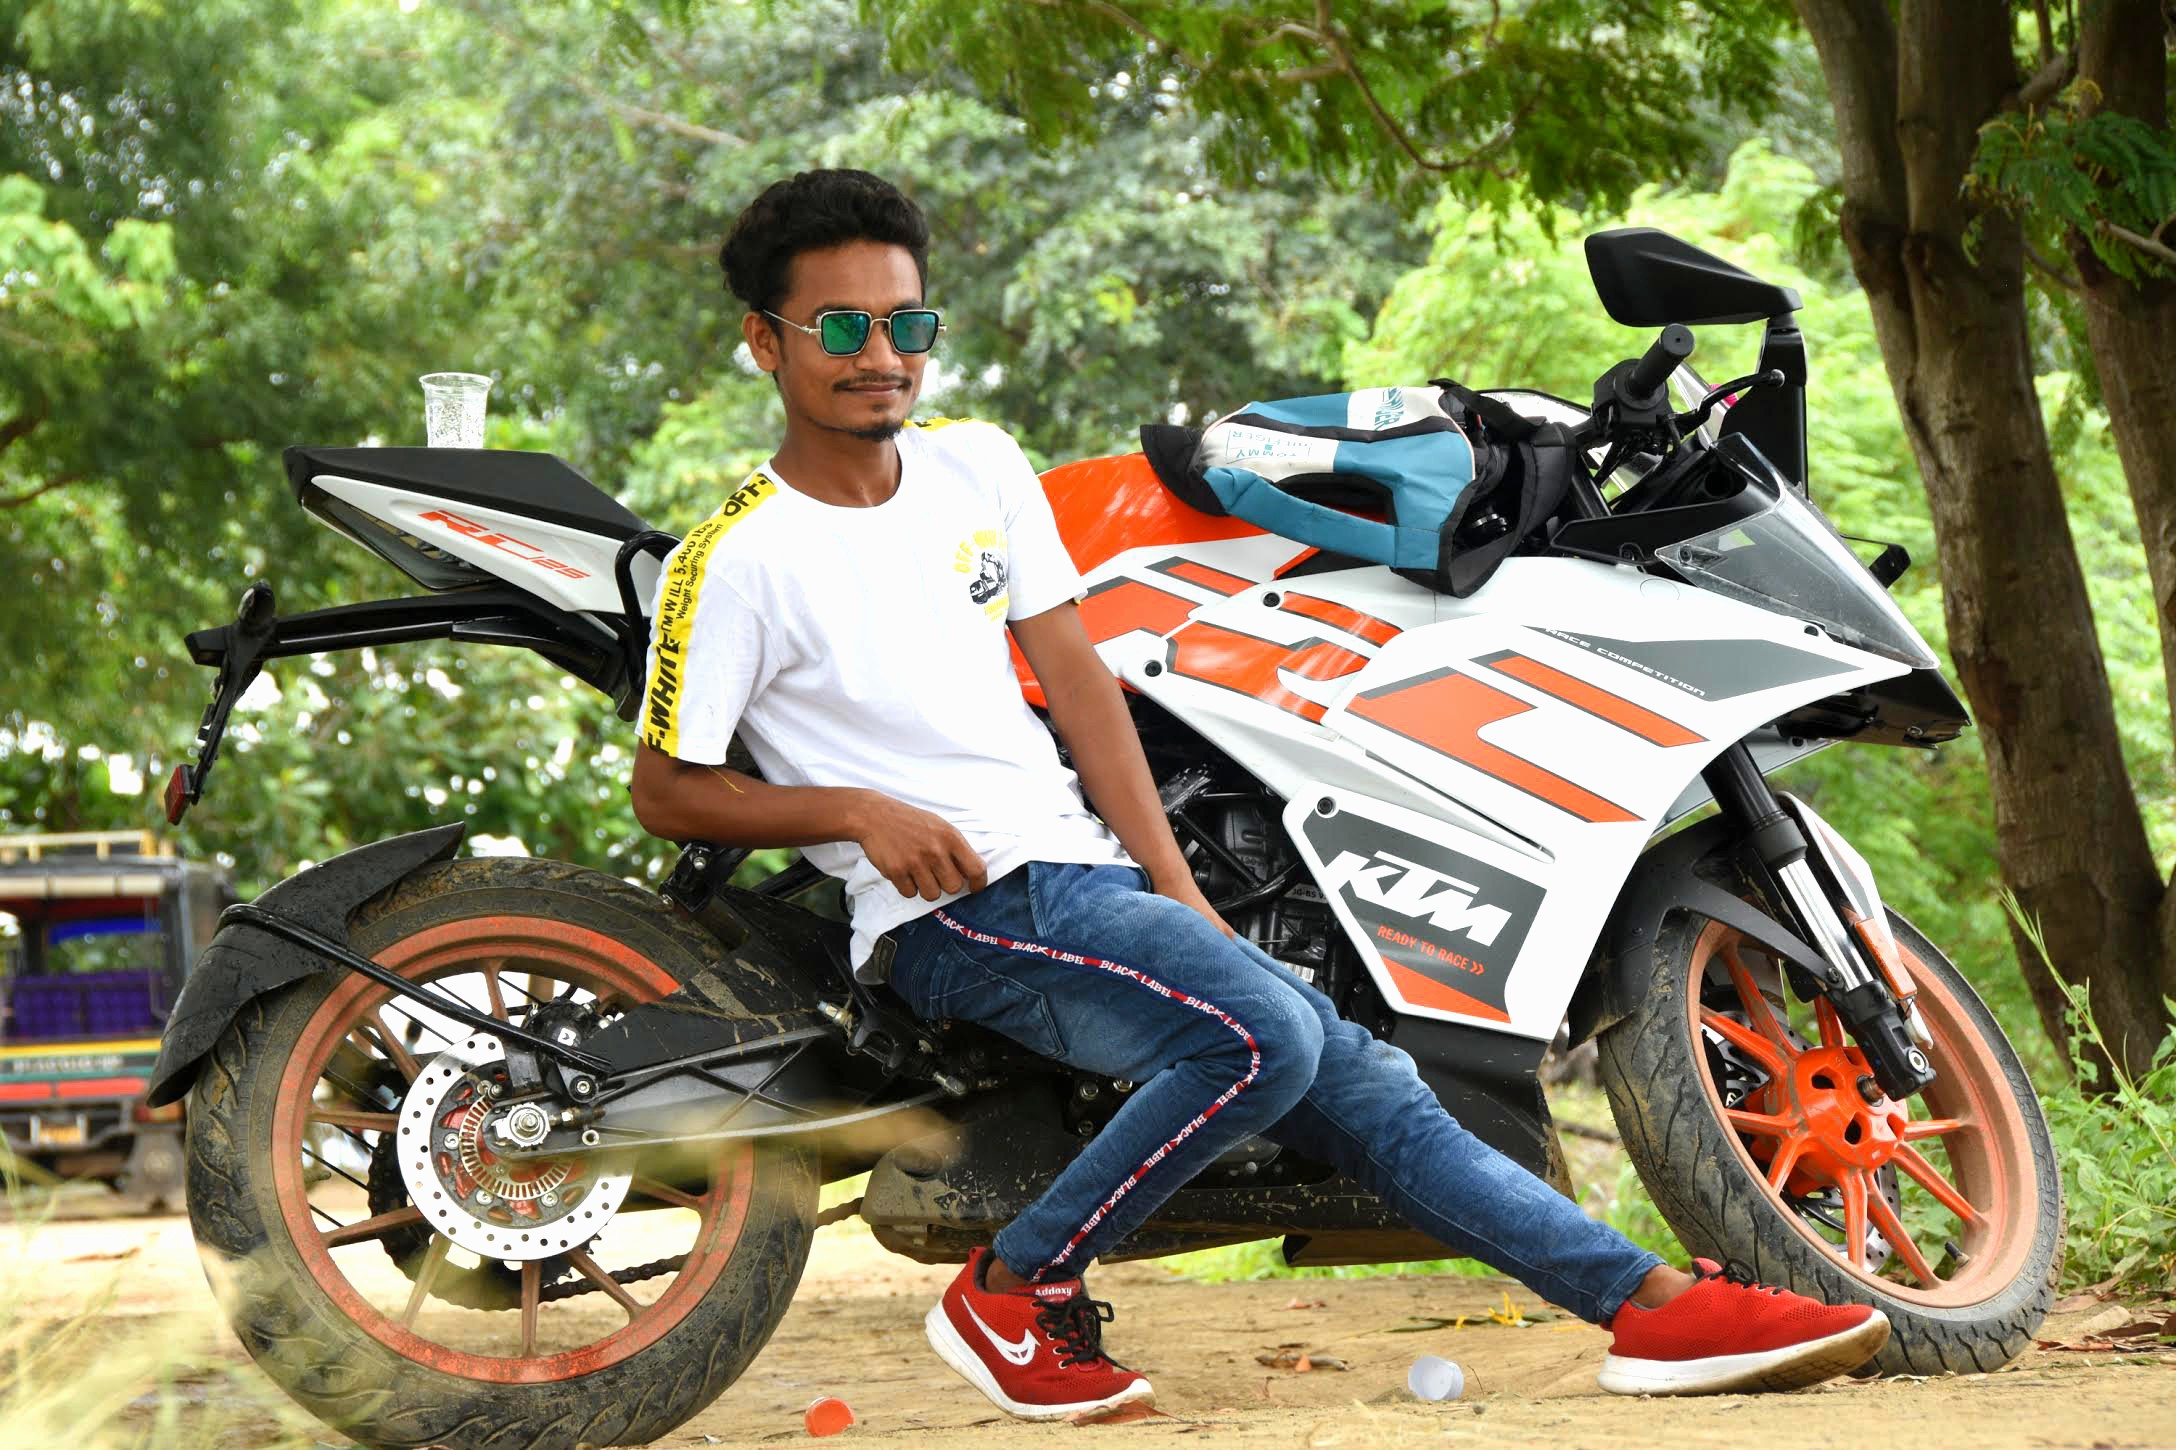 Boy posing with KTM bike